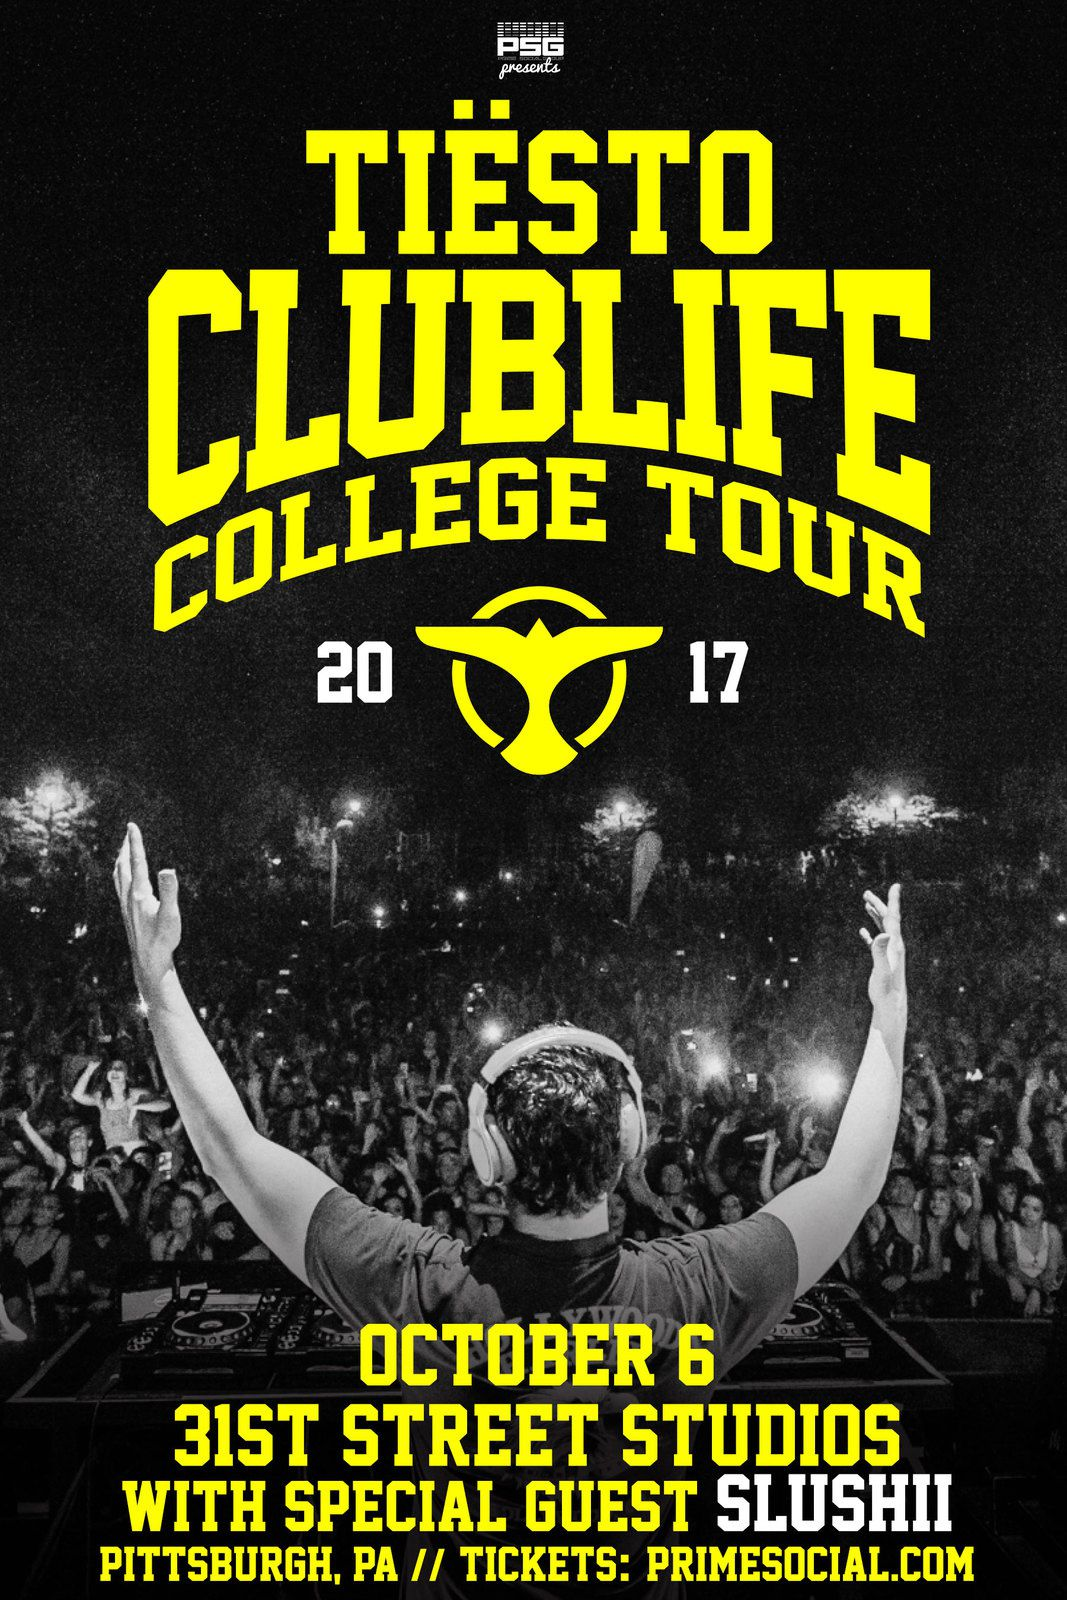 Tiësto date | Club Life College Tour | October 06, 2017 - Pittsburgh, PA